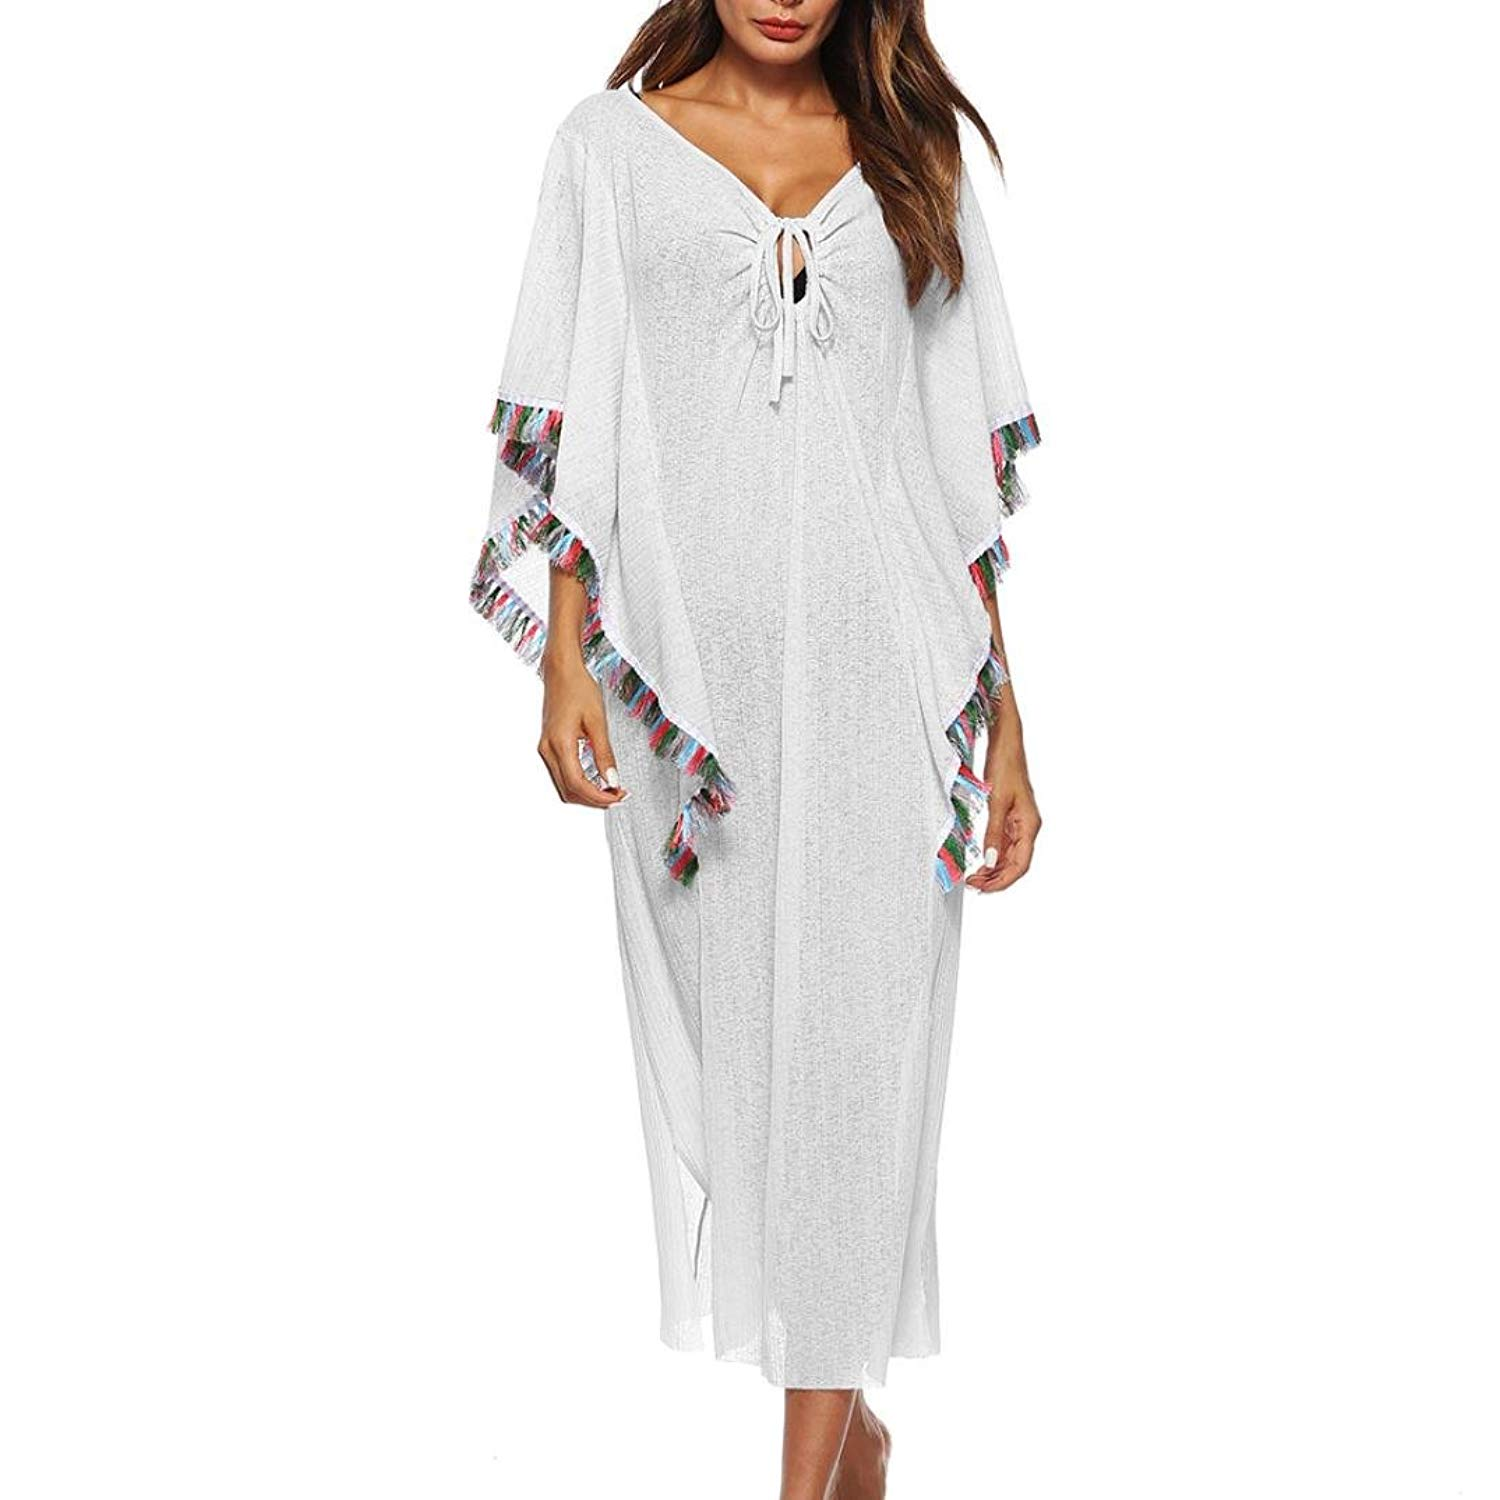 RNTop® Women Smock, Women Bathing Smock Dress Cover up Bikini Swimsuit Swimwear Crochet Smock Beach Cover up